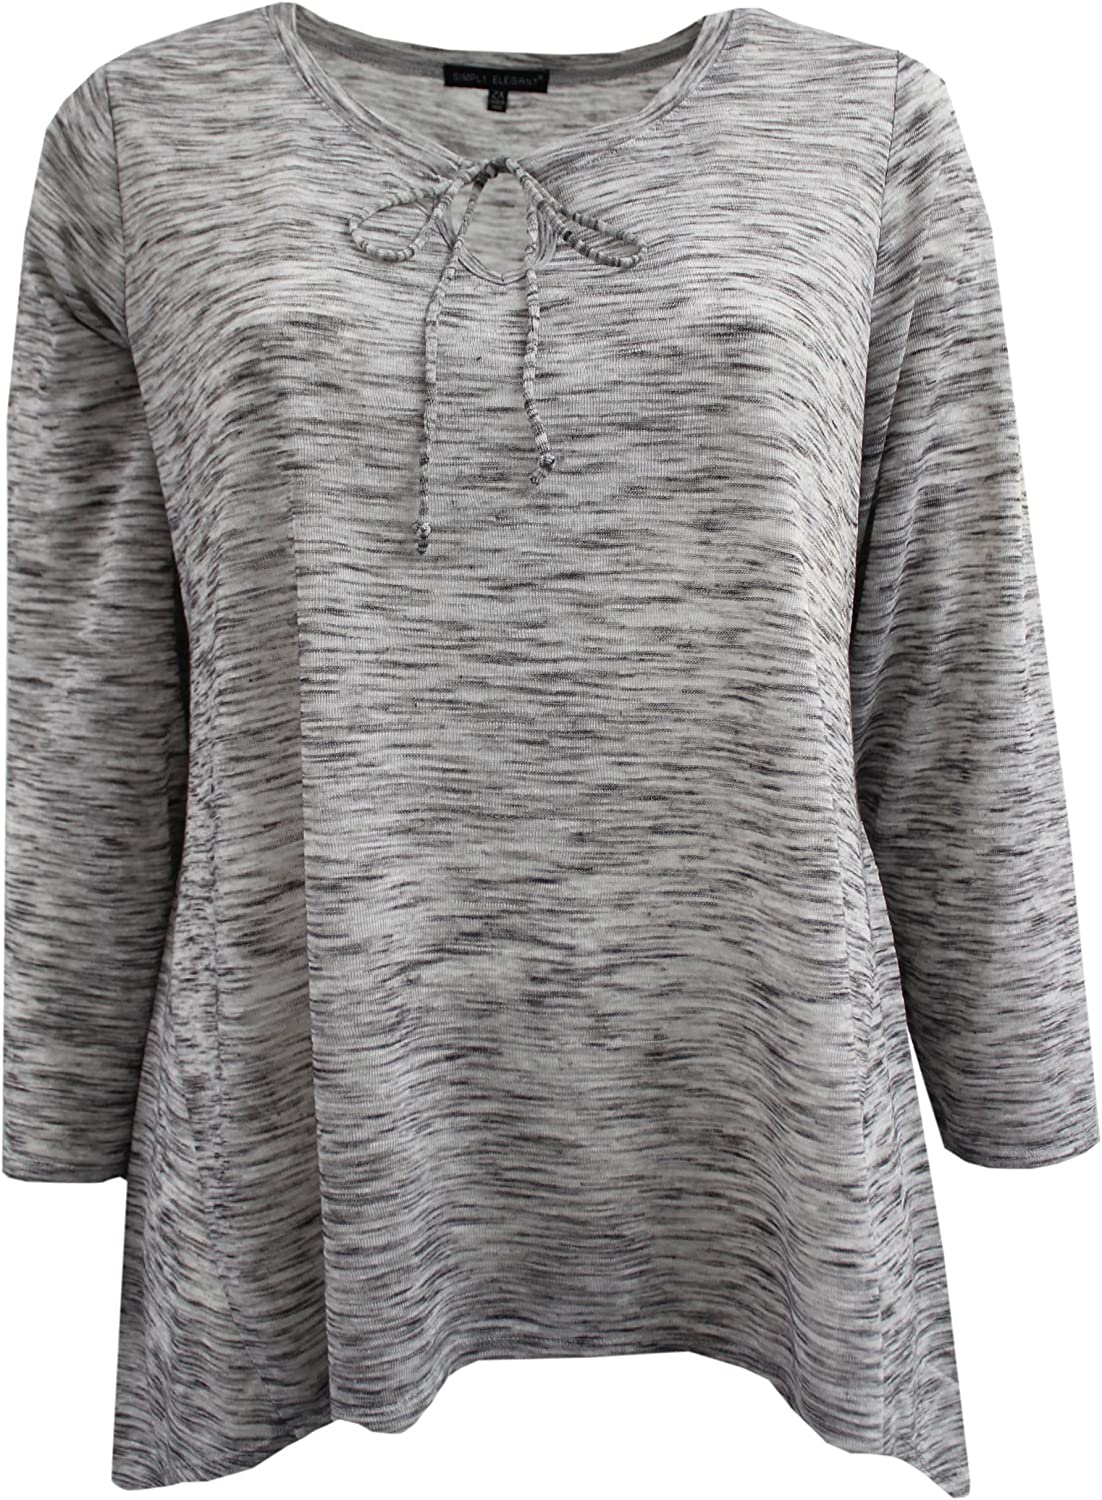 BNY Women's Plus Size Long Sleeve Tie Chest Top Knit T-Shirt Blouse Tee 1X-3X